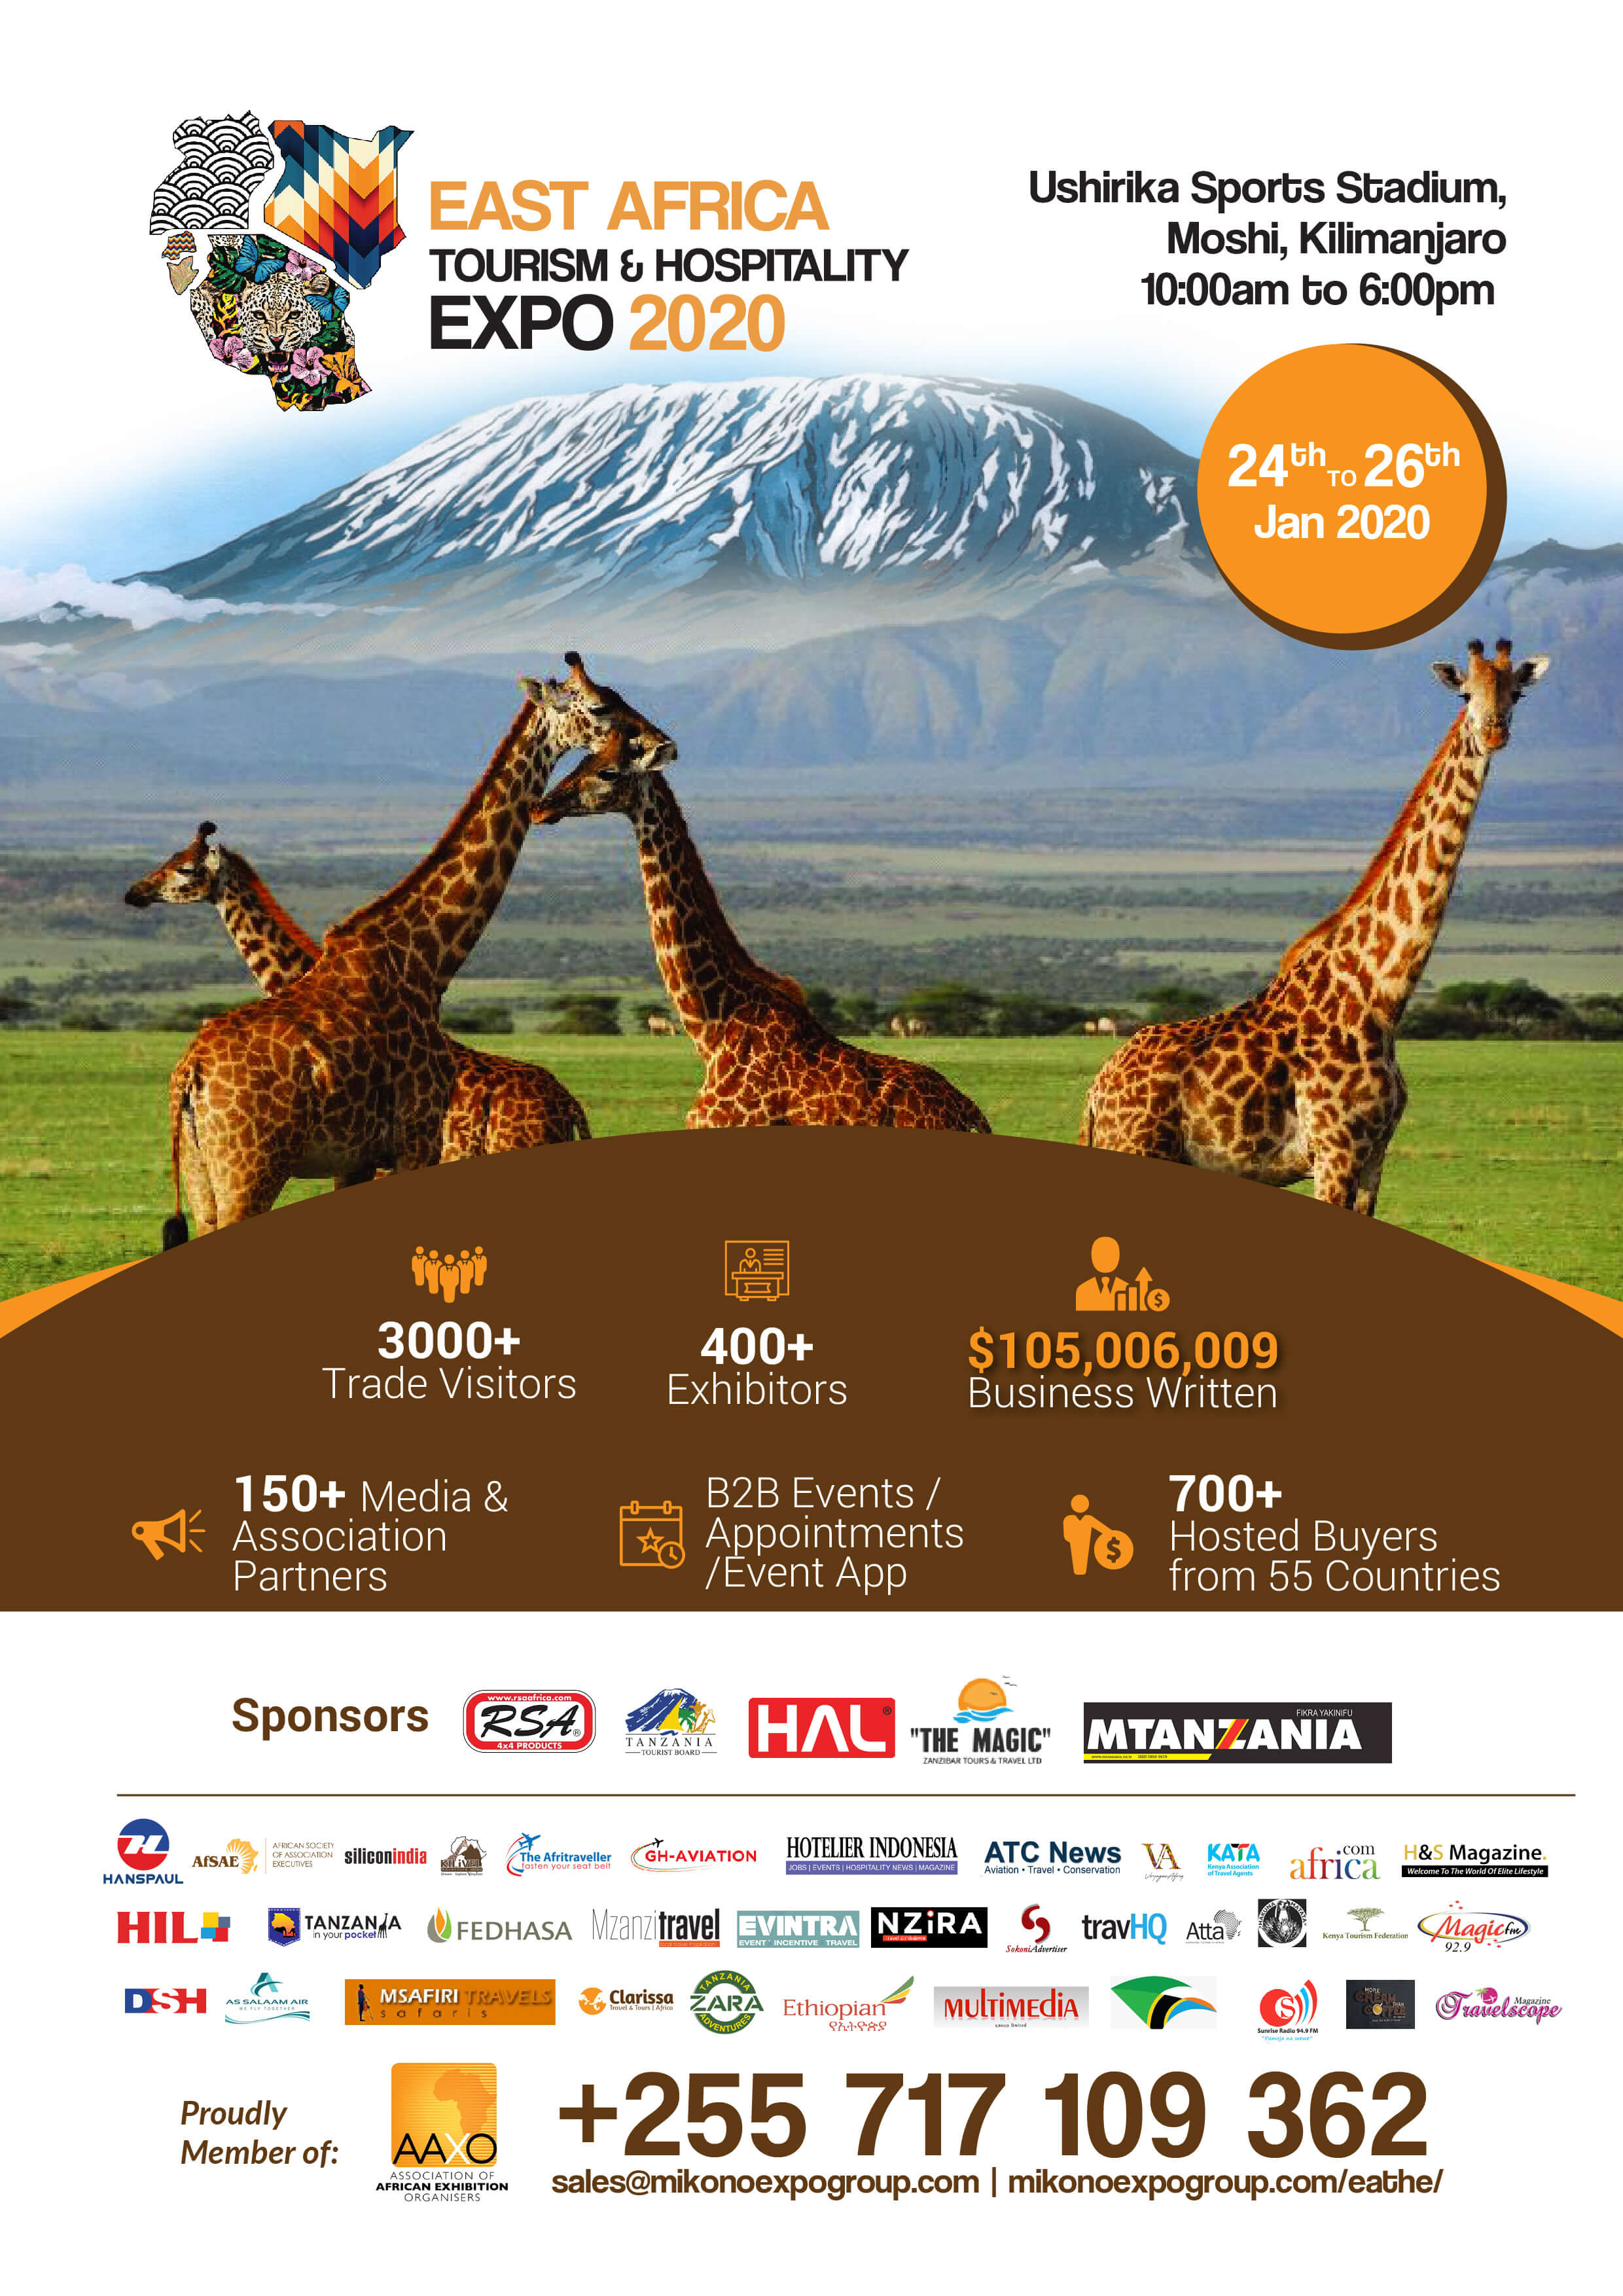 East Africa Tourism and Hospitality Expo 2020